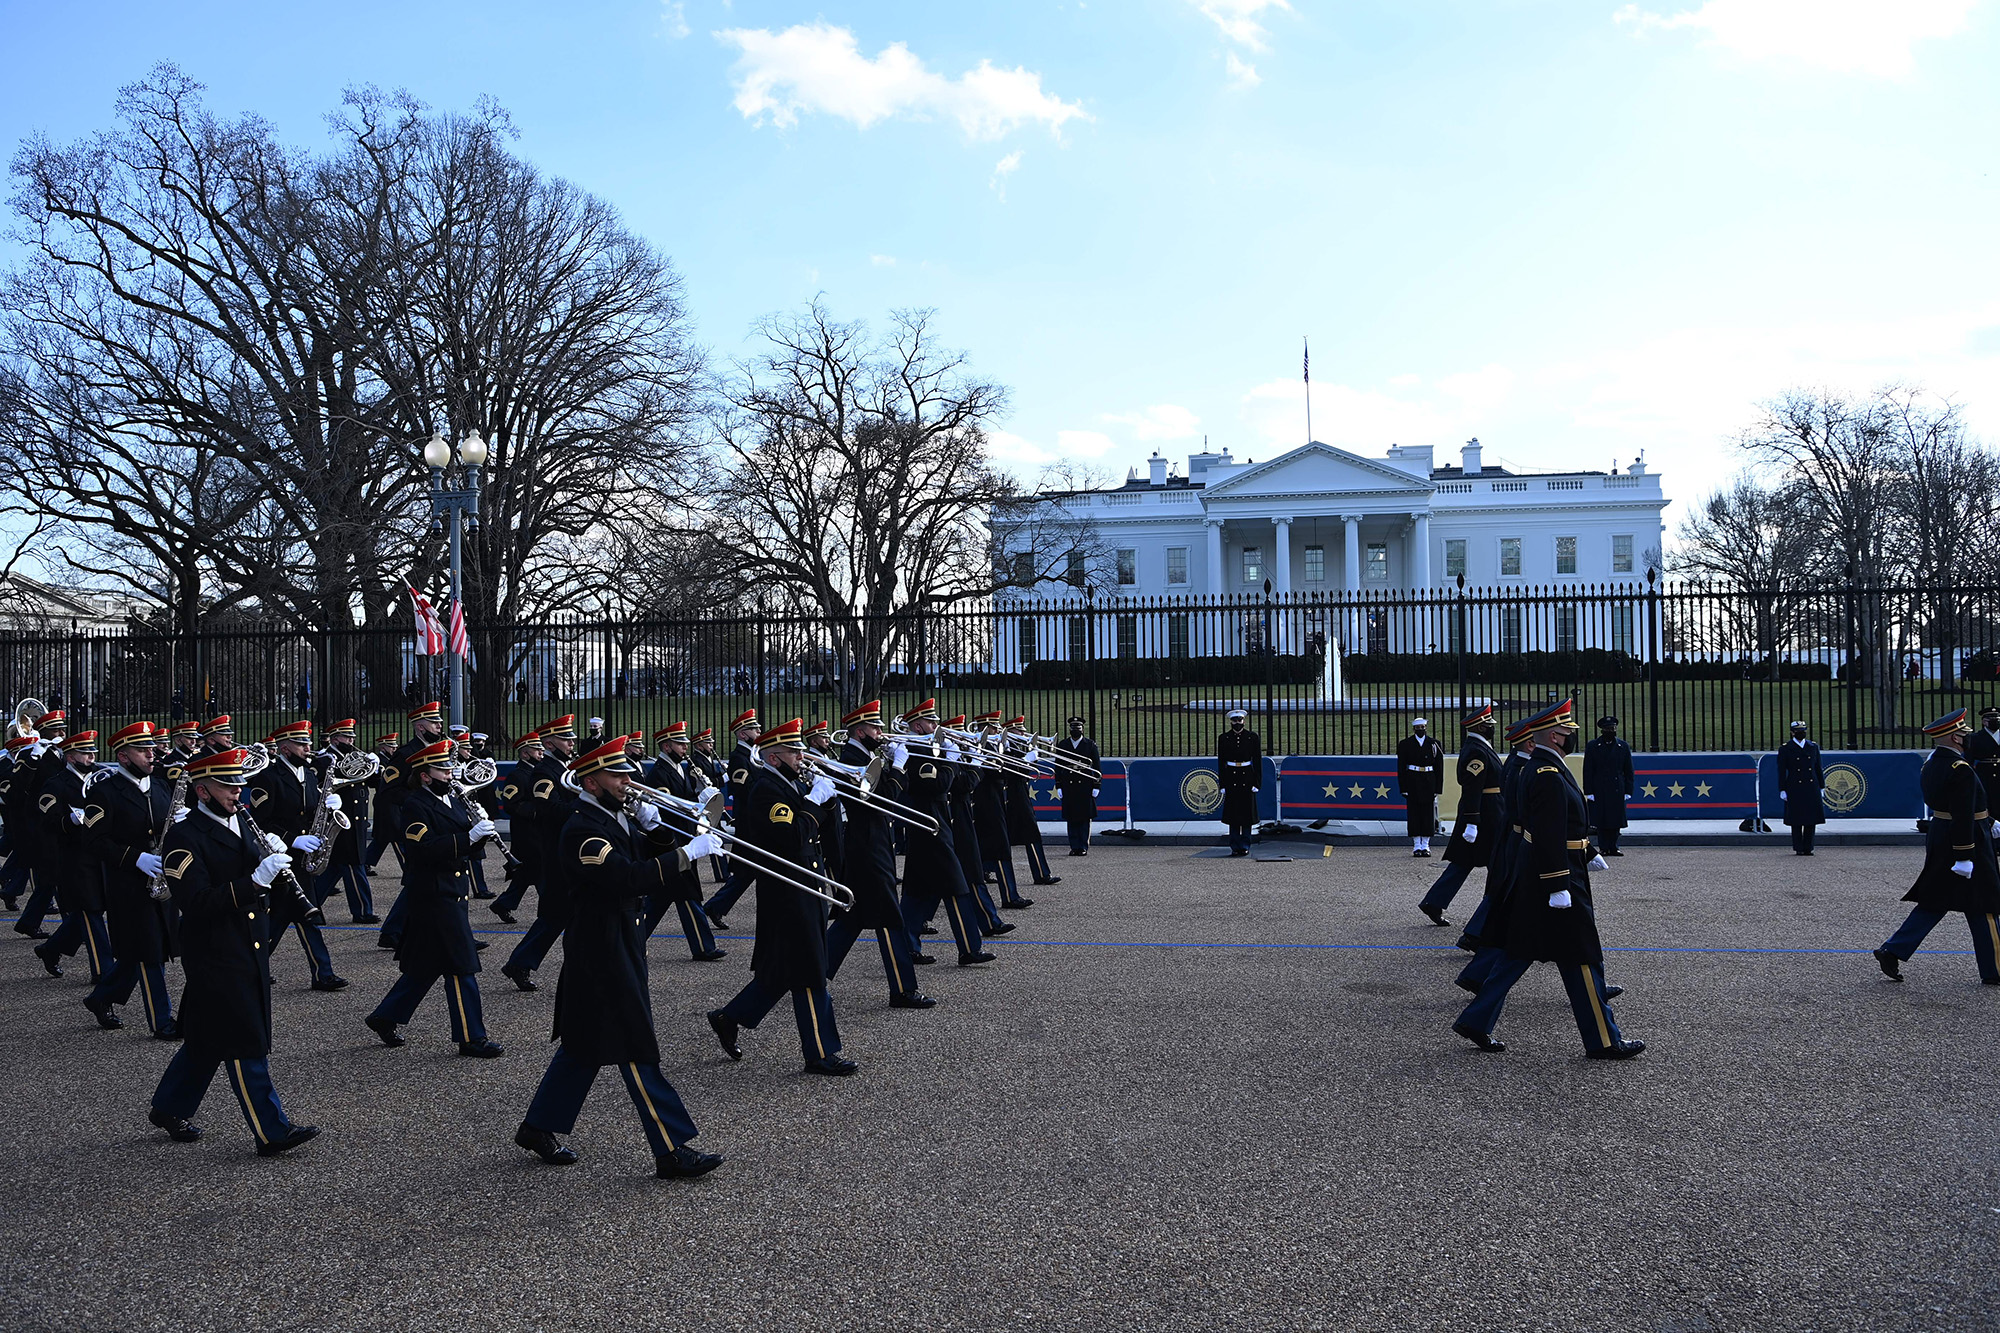 A military band parades on the street near the White House after President Joe Biden and Vice President Kamala Harris were sworn in at the Capitol on Jan. 20, 2021, in Washington. (Mandel Ngan/AFP via Getty Images)